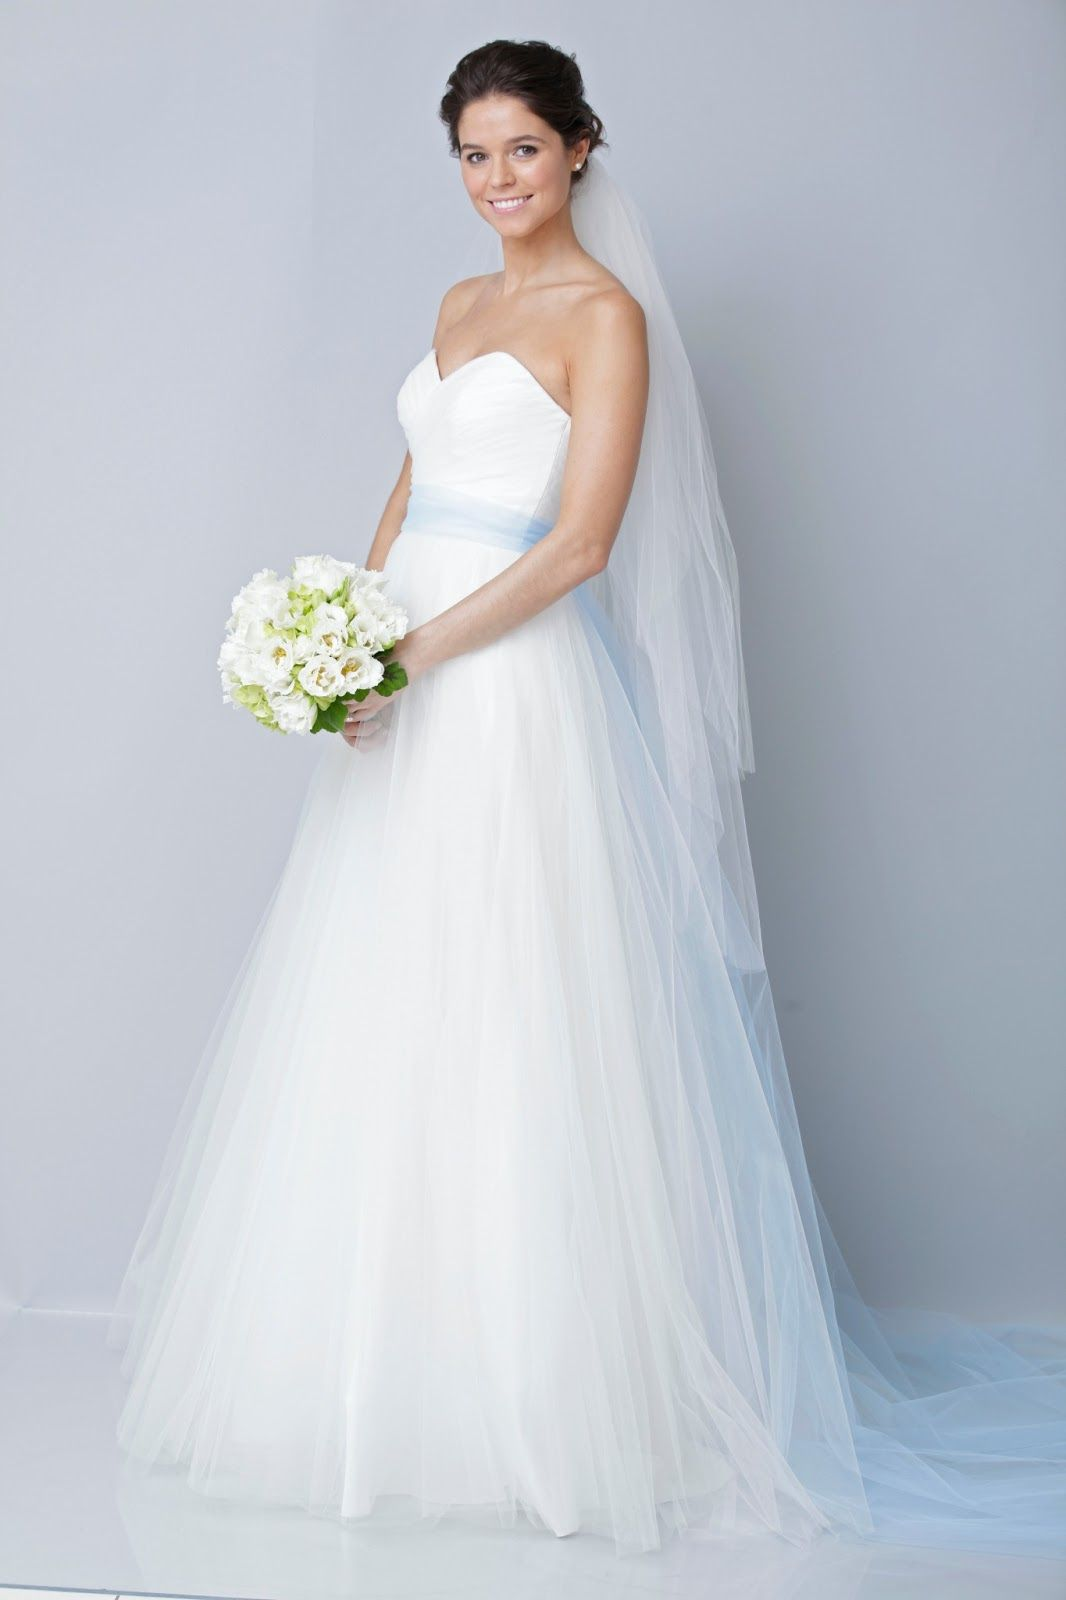 20+ White Dress Wedding - Dress for Country Wedding Guest Check more ...